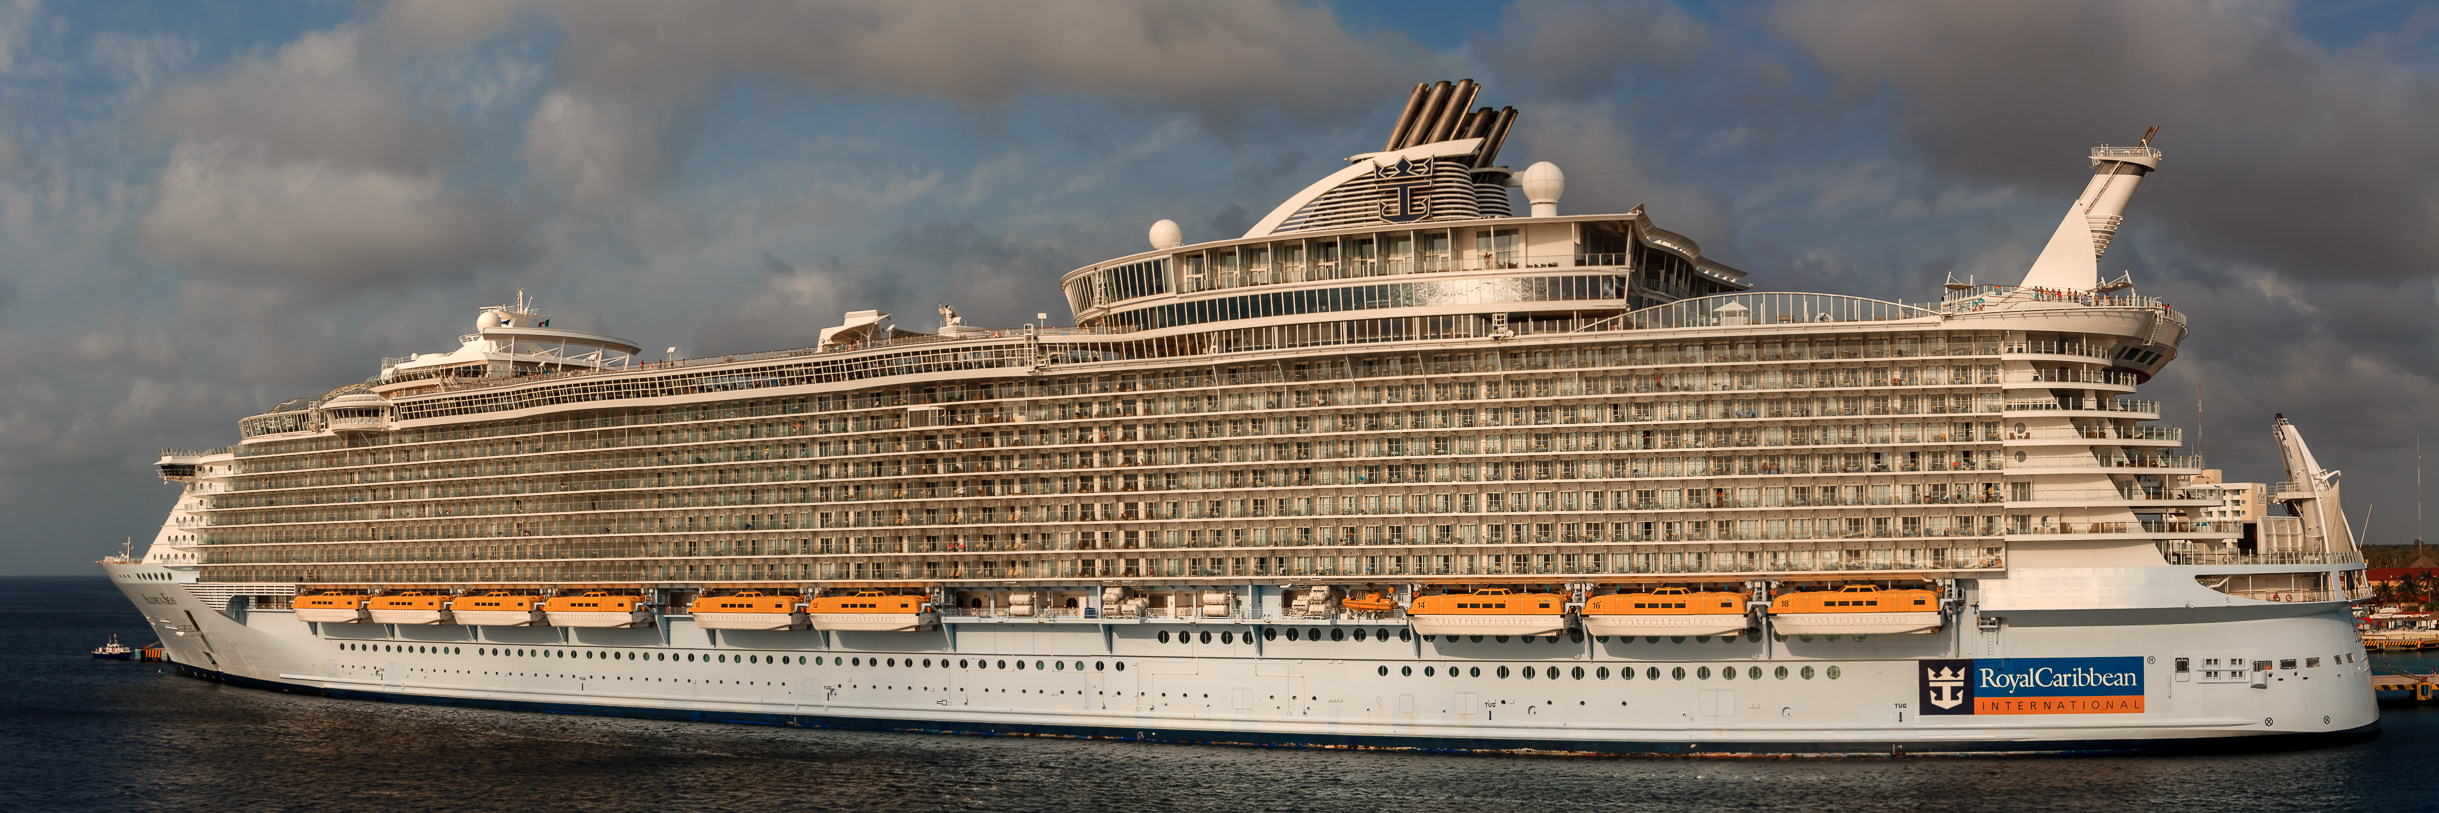 The Royal Caribbean cruise ship Allure of the Seas, docked in Cozumel, Mexico.